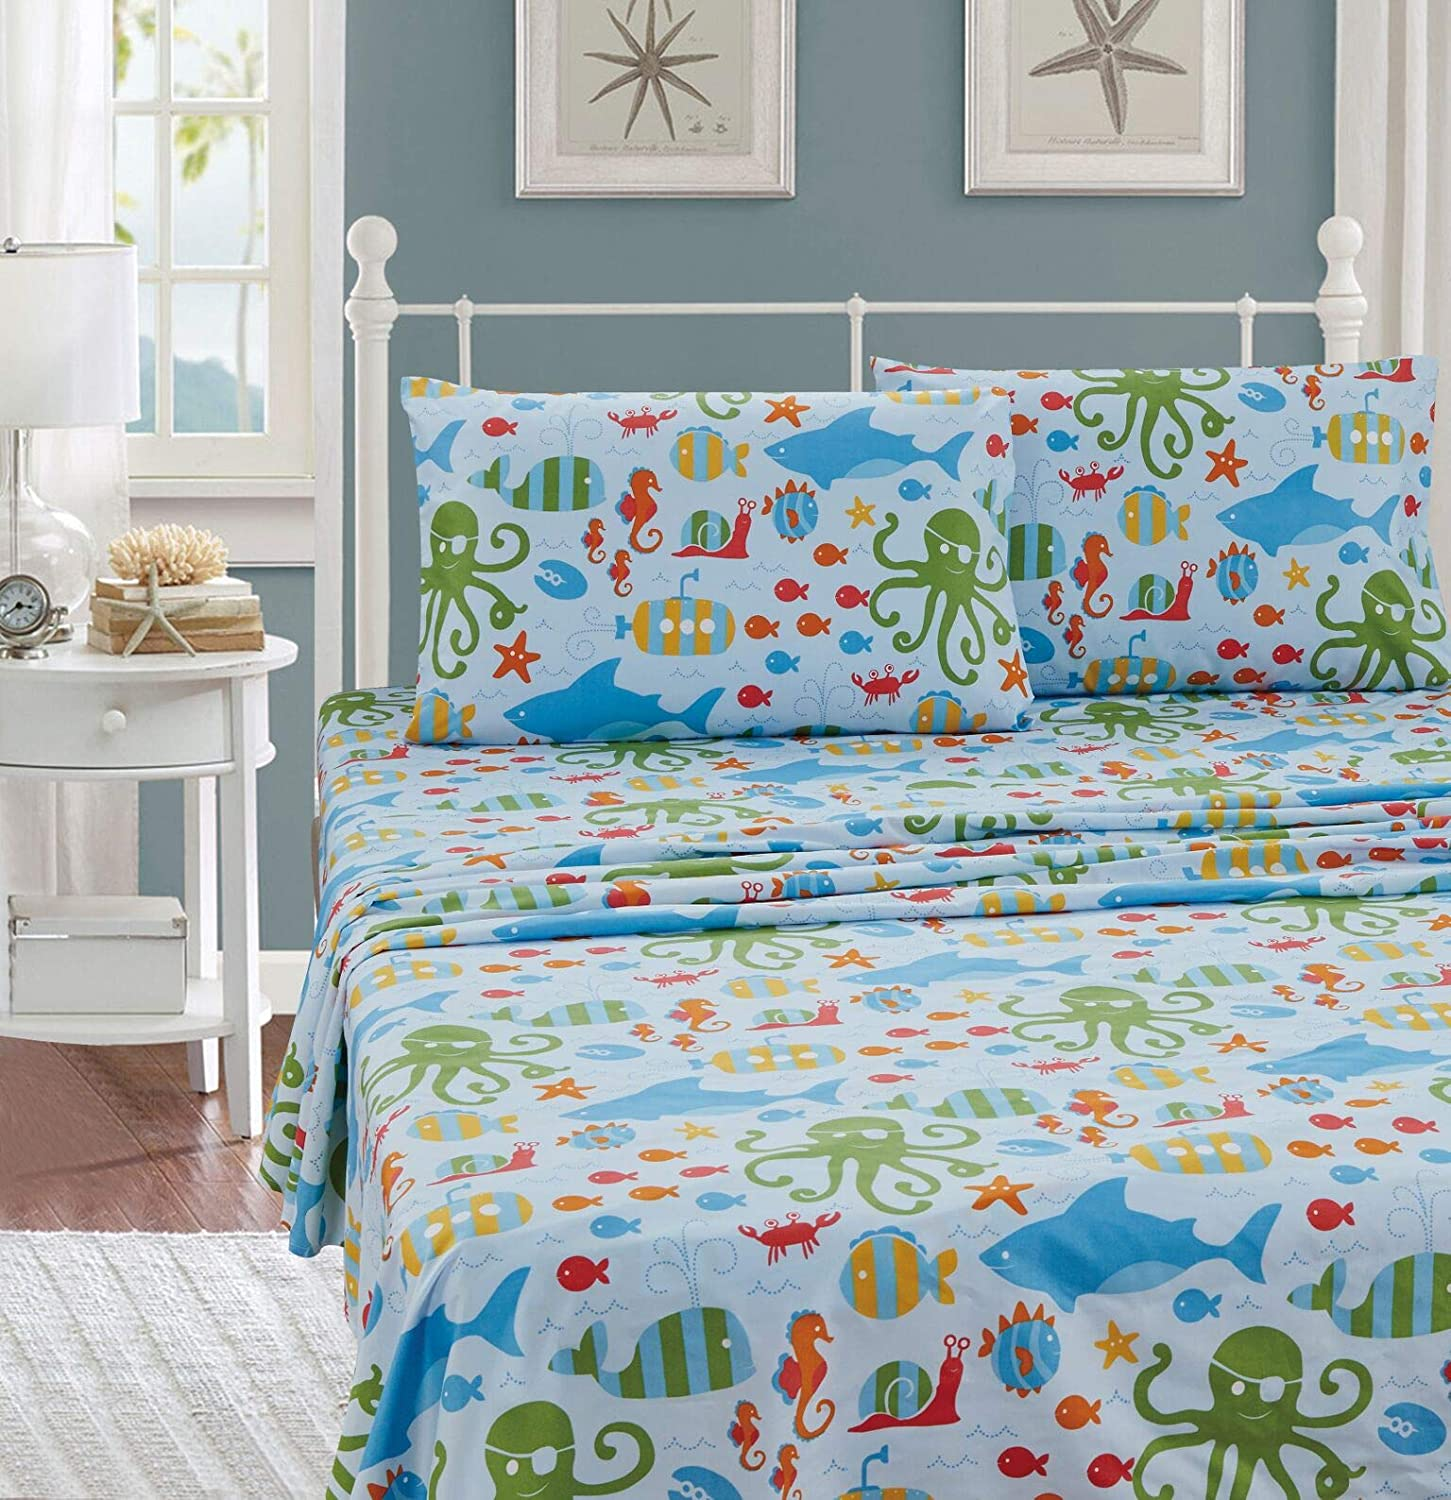 Better Home Style Multicolor Under The Sea Life Whales Fish Seahorse Sea Stars Octopus Lobster Kids/Boys/Teens 3 Piece Sheet Set Includes Pillowcase Flat and Fitted Sheets # Octopus (Twin)